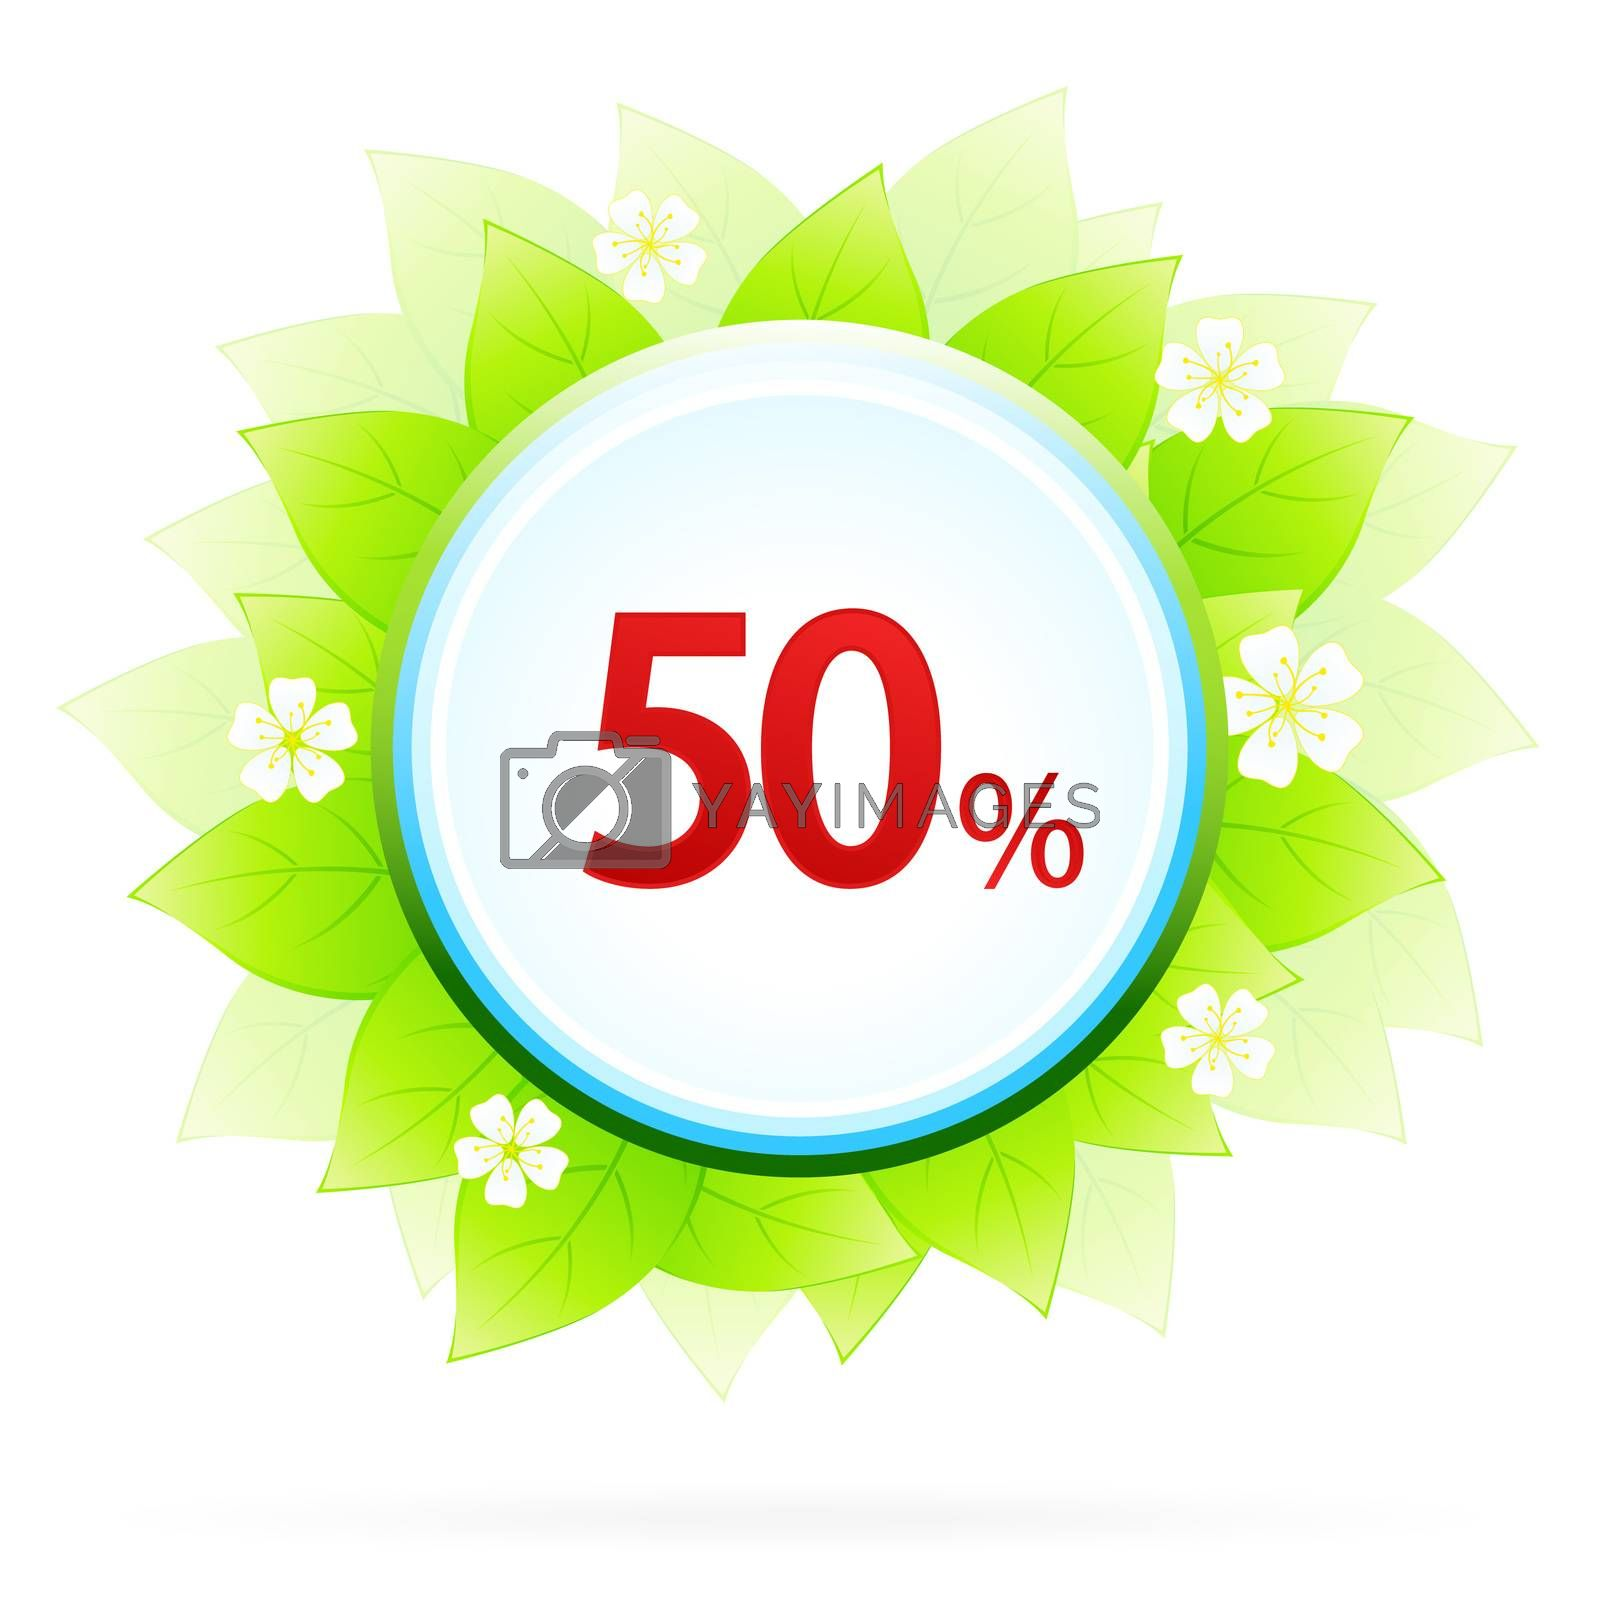 50% Discount by WaD